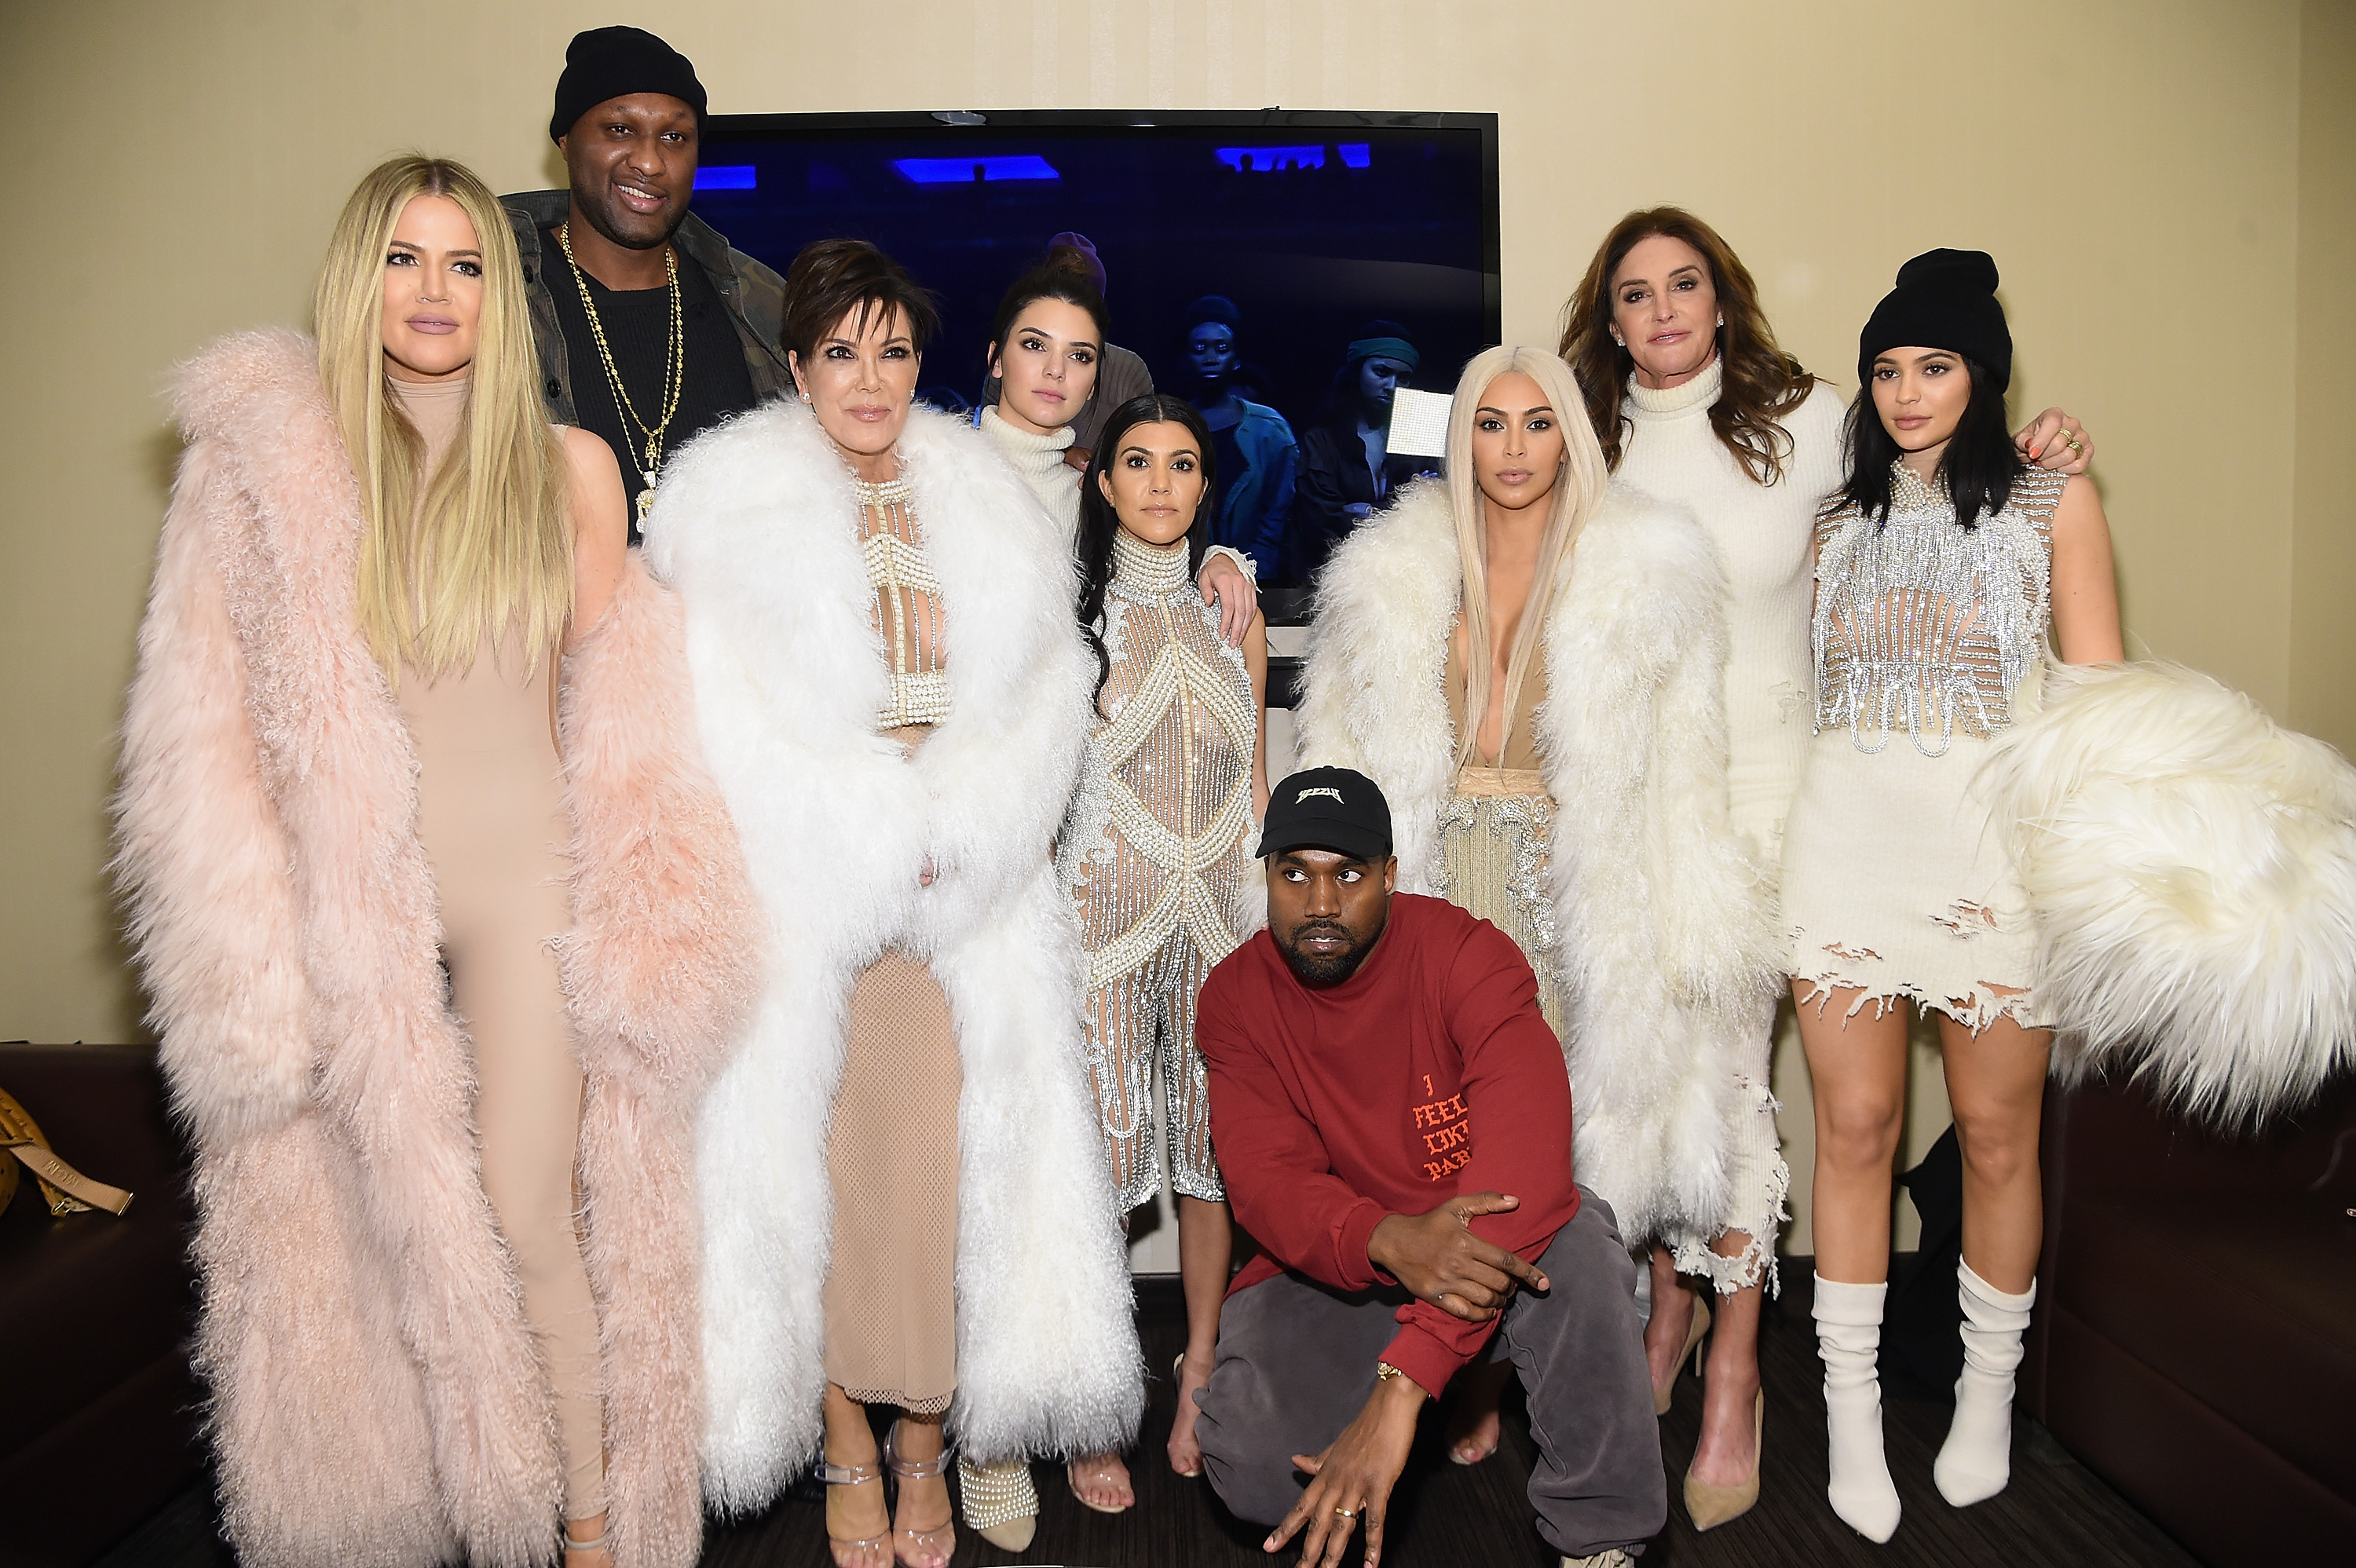 Kim Kardashian Had To Explain Who Caitlyn Jenner Was To Lamar Odom GettyImages 509642778